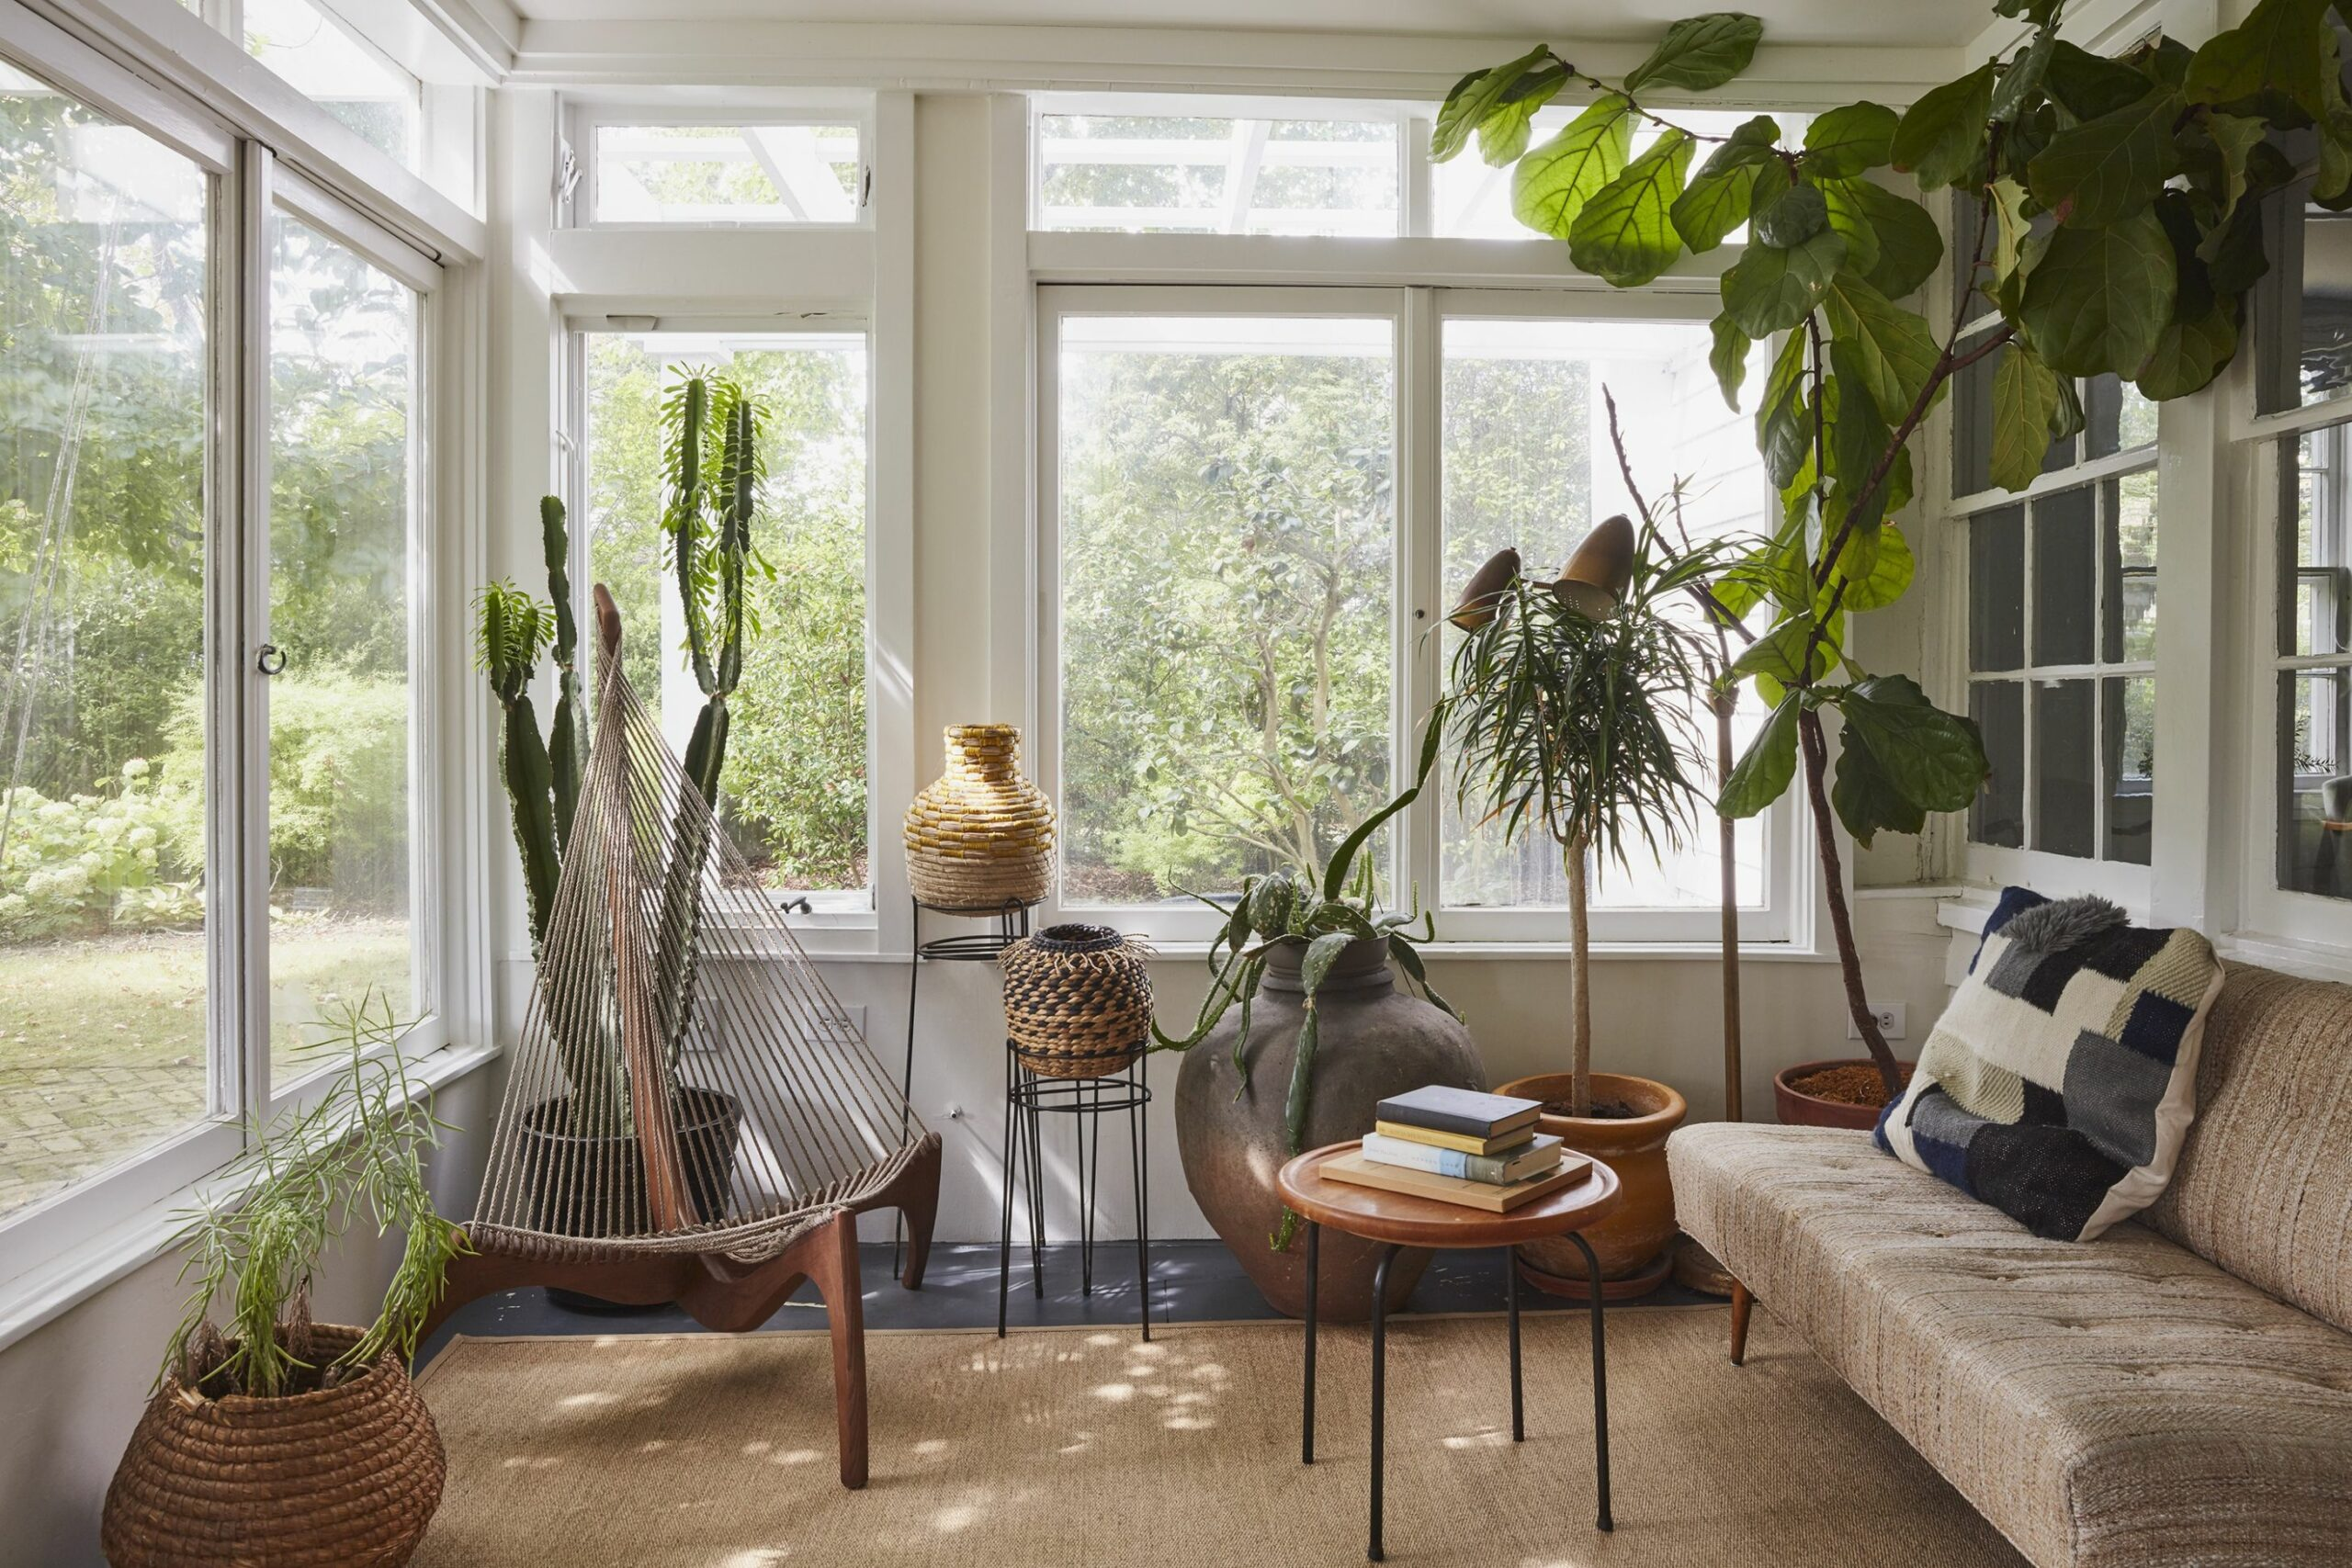 Current Obsessions: The Sea Captain's Sunroom - Gardenista